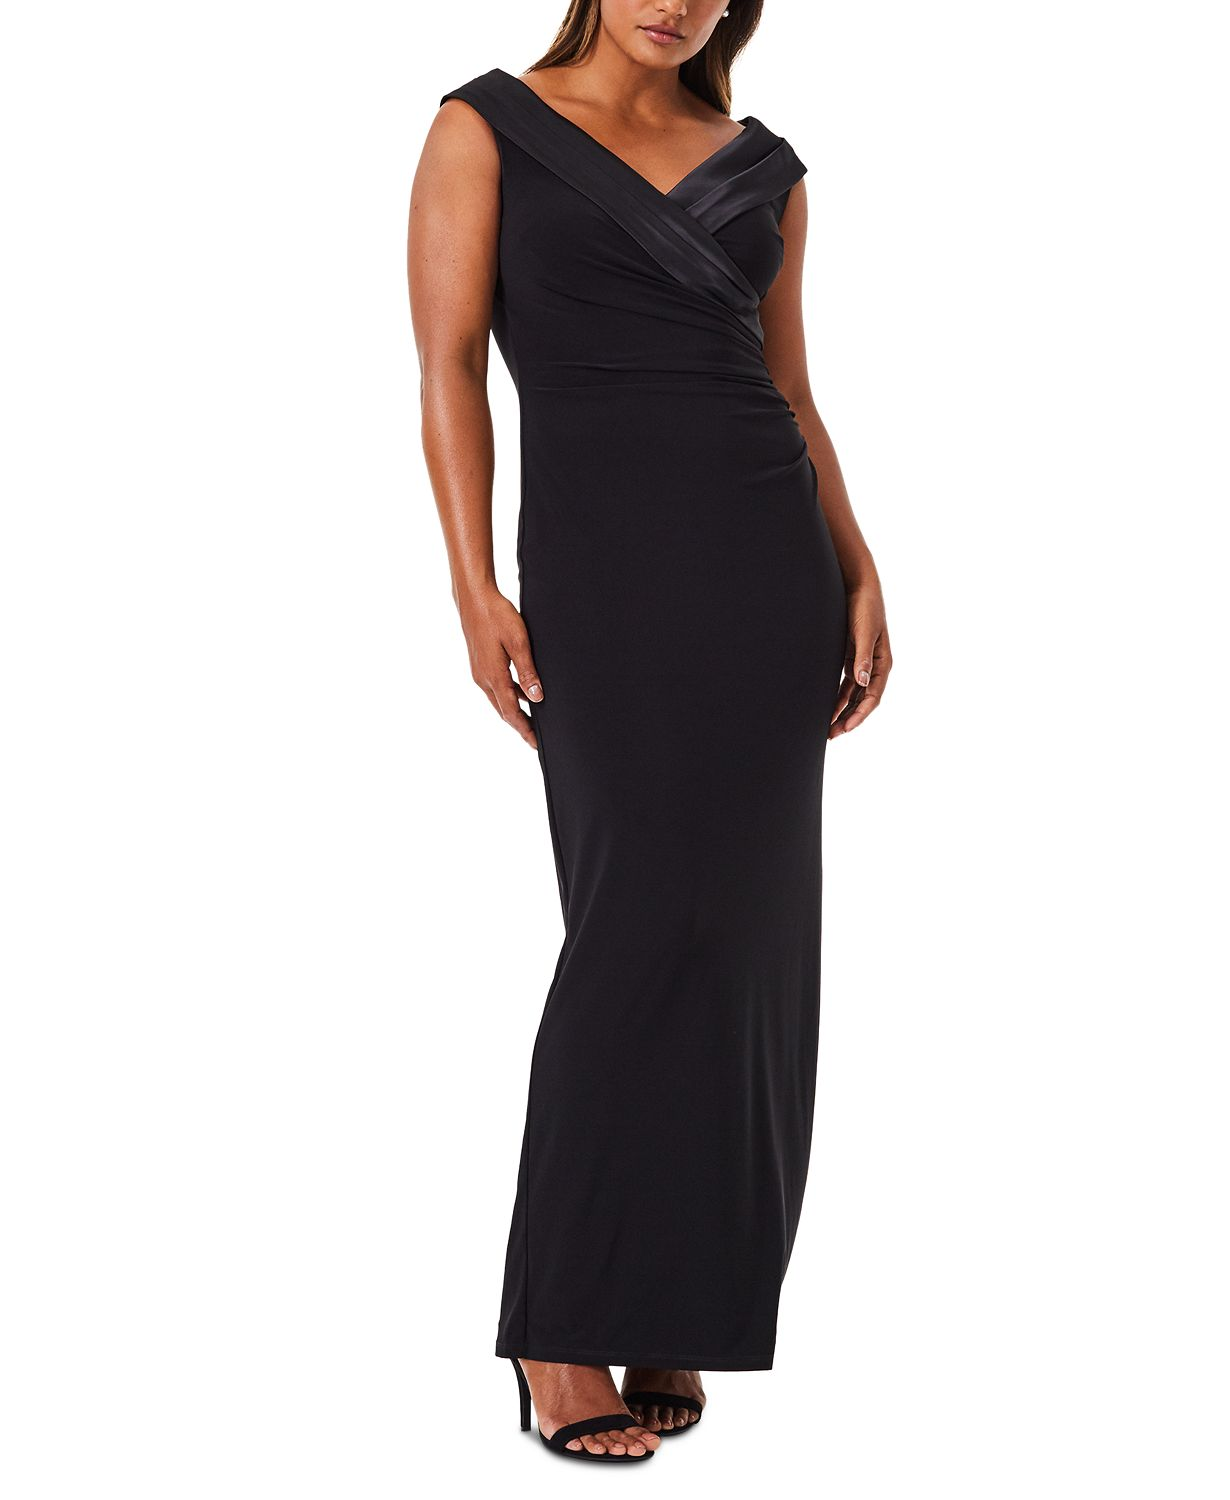 Woman in a black Sleeveless Portrait-Collar Draped Christmas party Gown